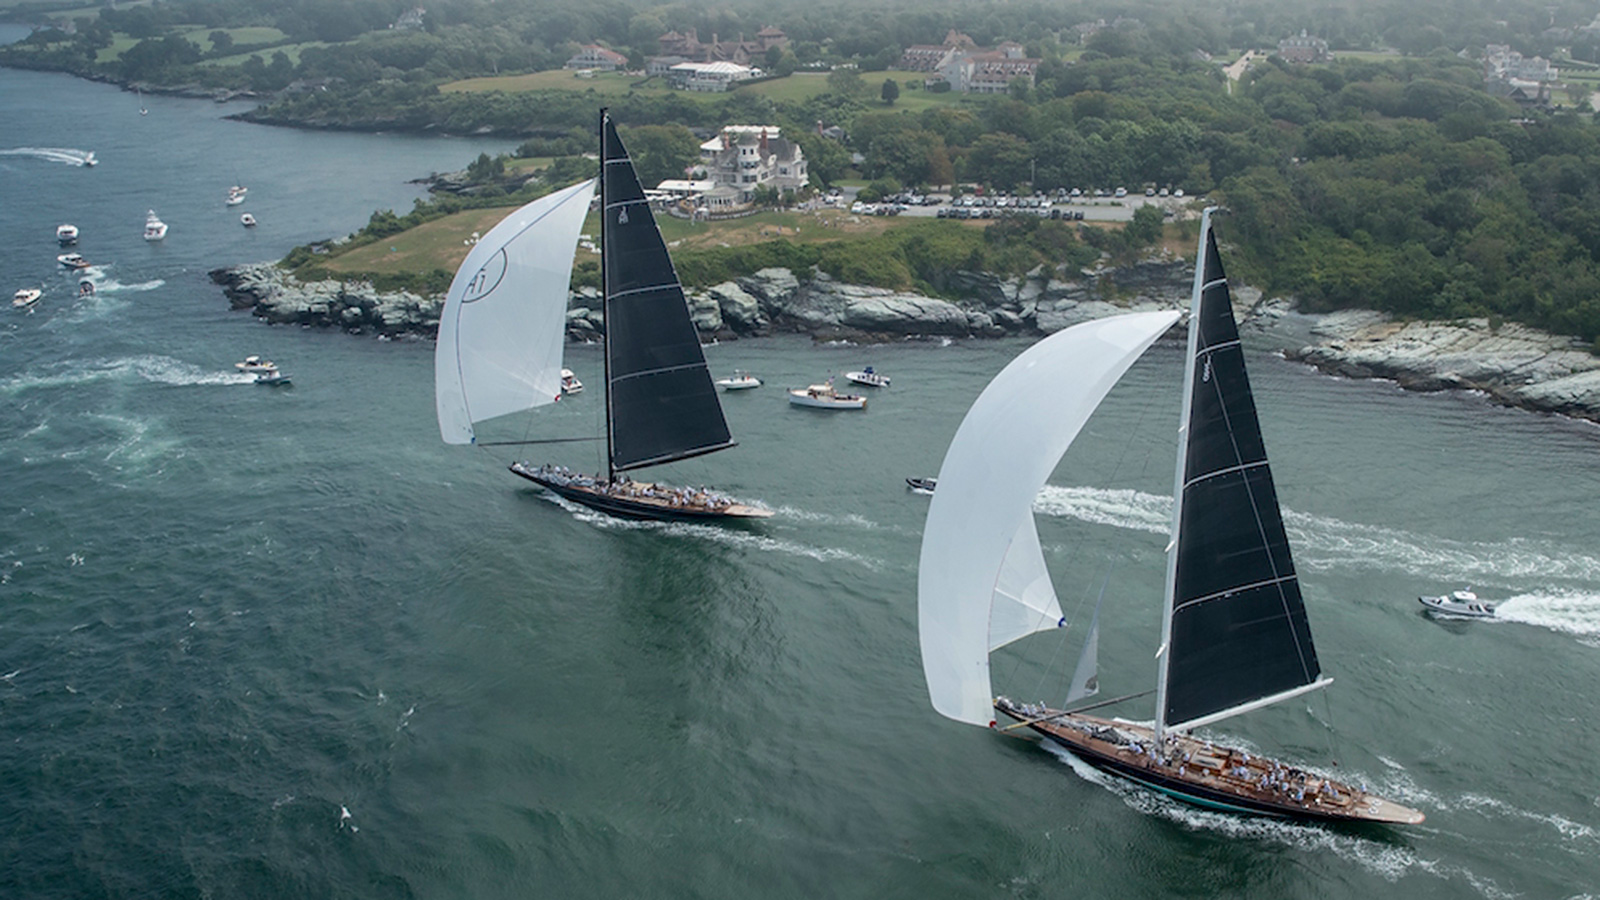 topaz-and-lionheart-racing-at-the-2017-j-class-world-championships-credit-onne-van-der-wal